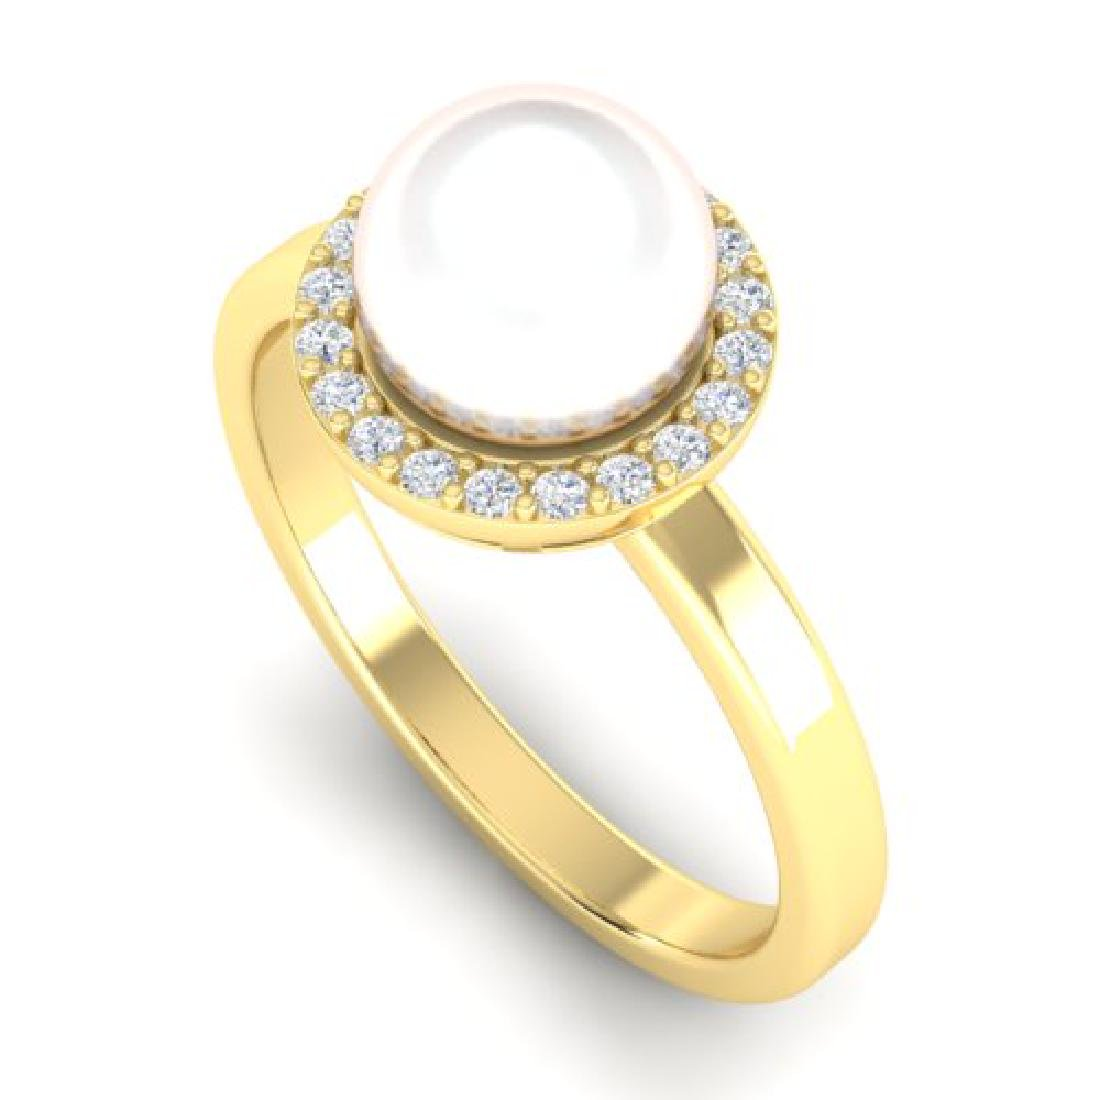 0.25 CTW Micro Pave Halo VS/SI Diamond & Pearl Ring 18K - 2